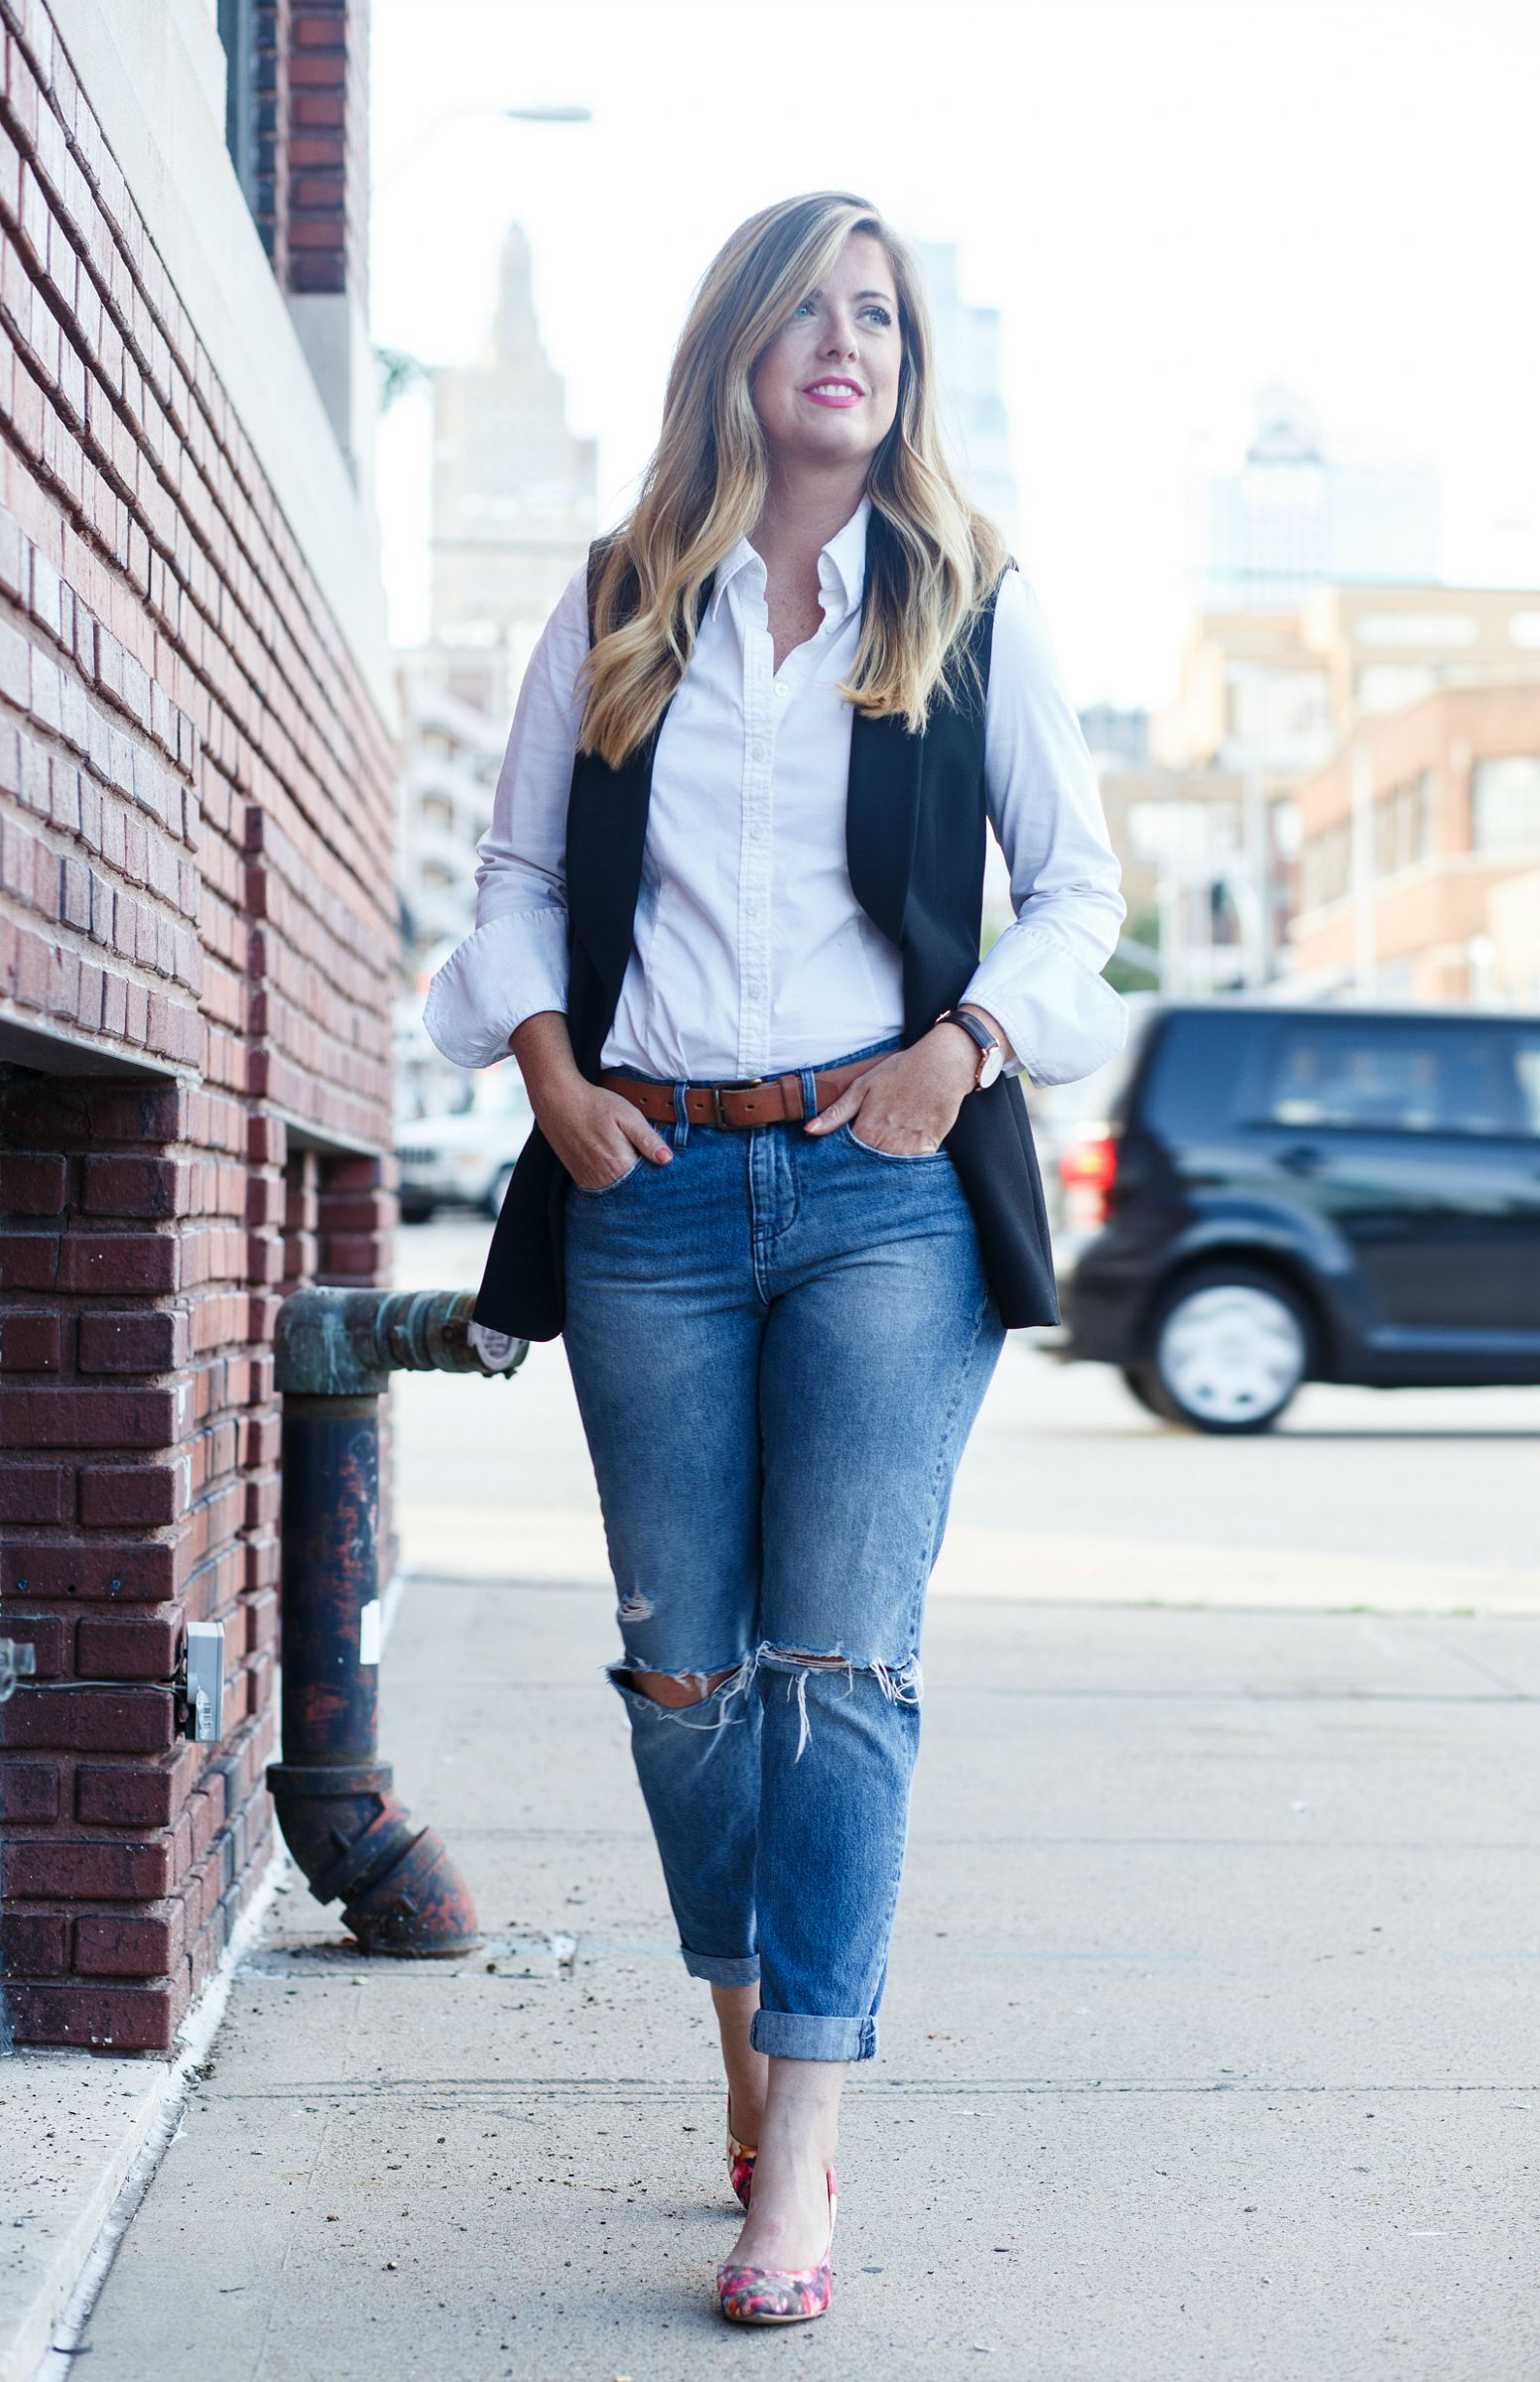 White button down shirt with black vest on Sophisticaited.com